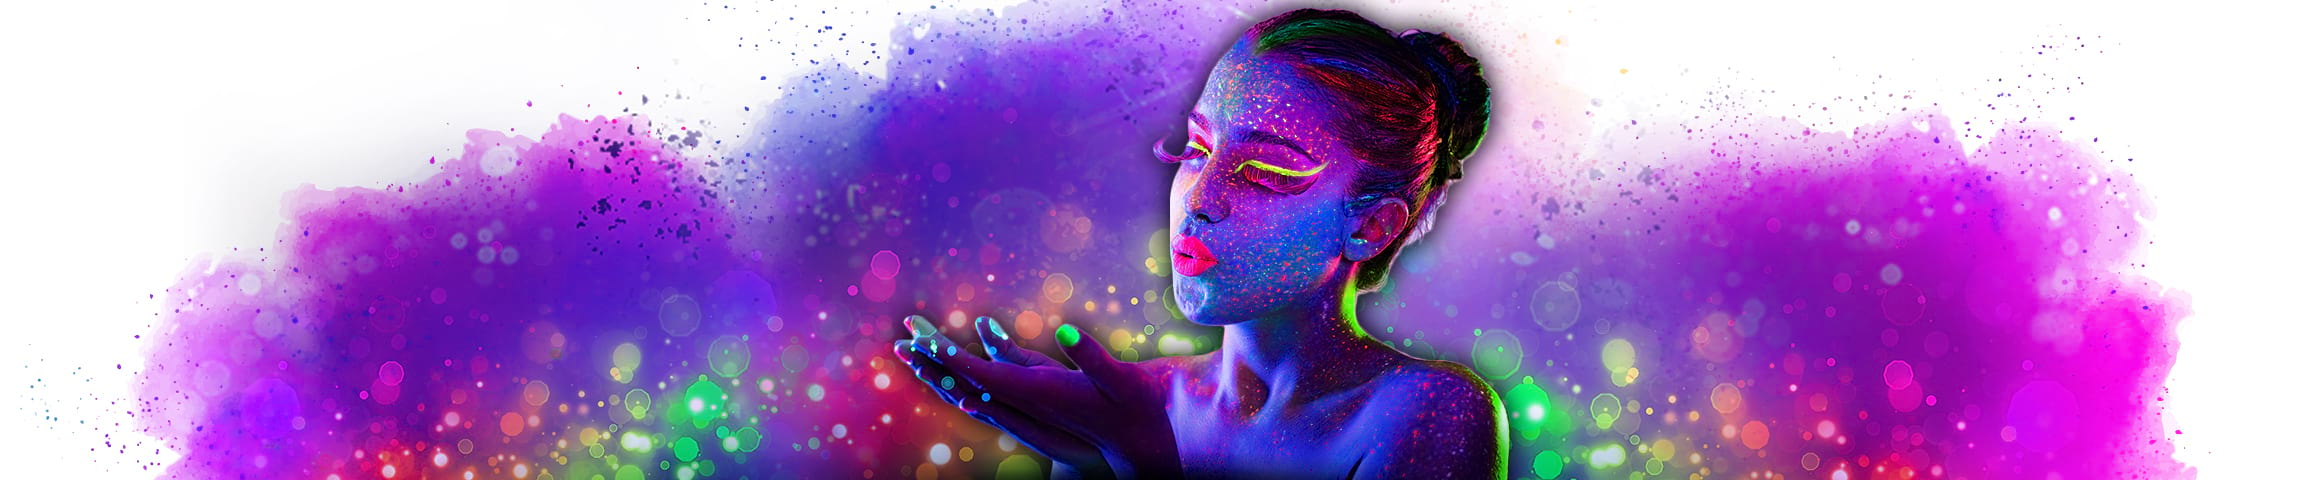 Blacklight schmink & make-up